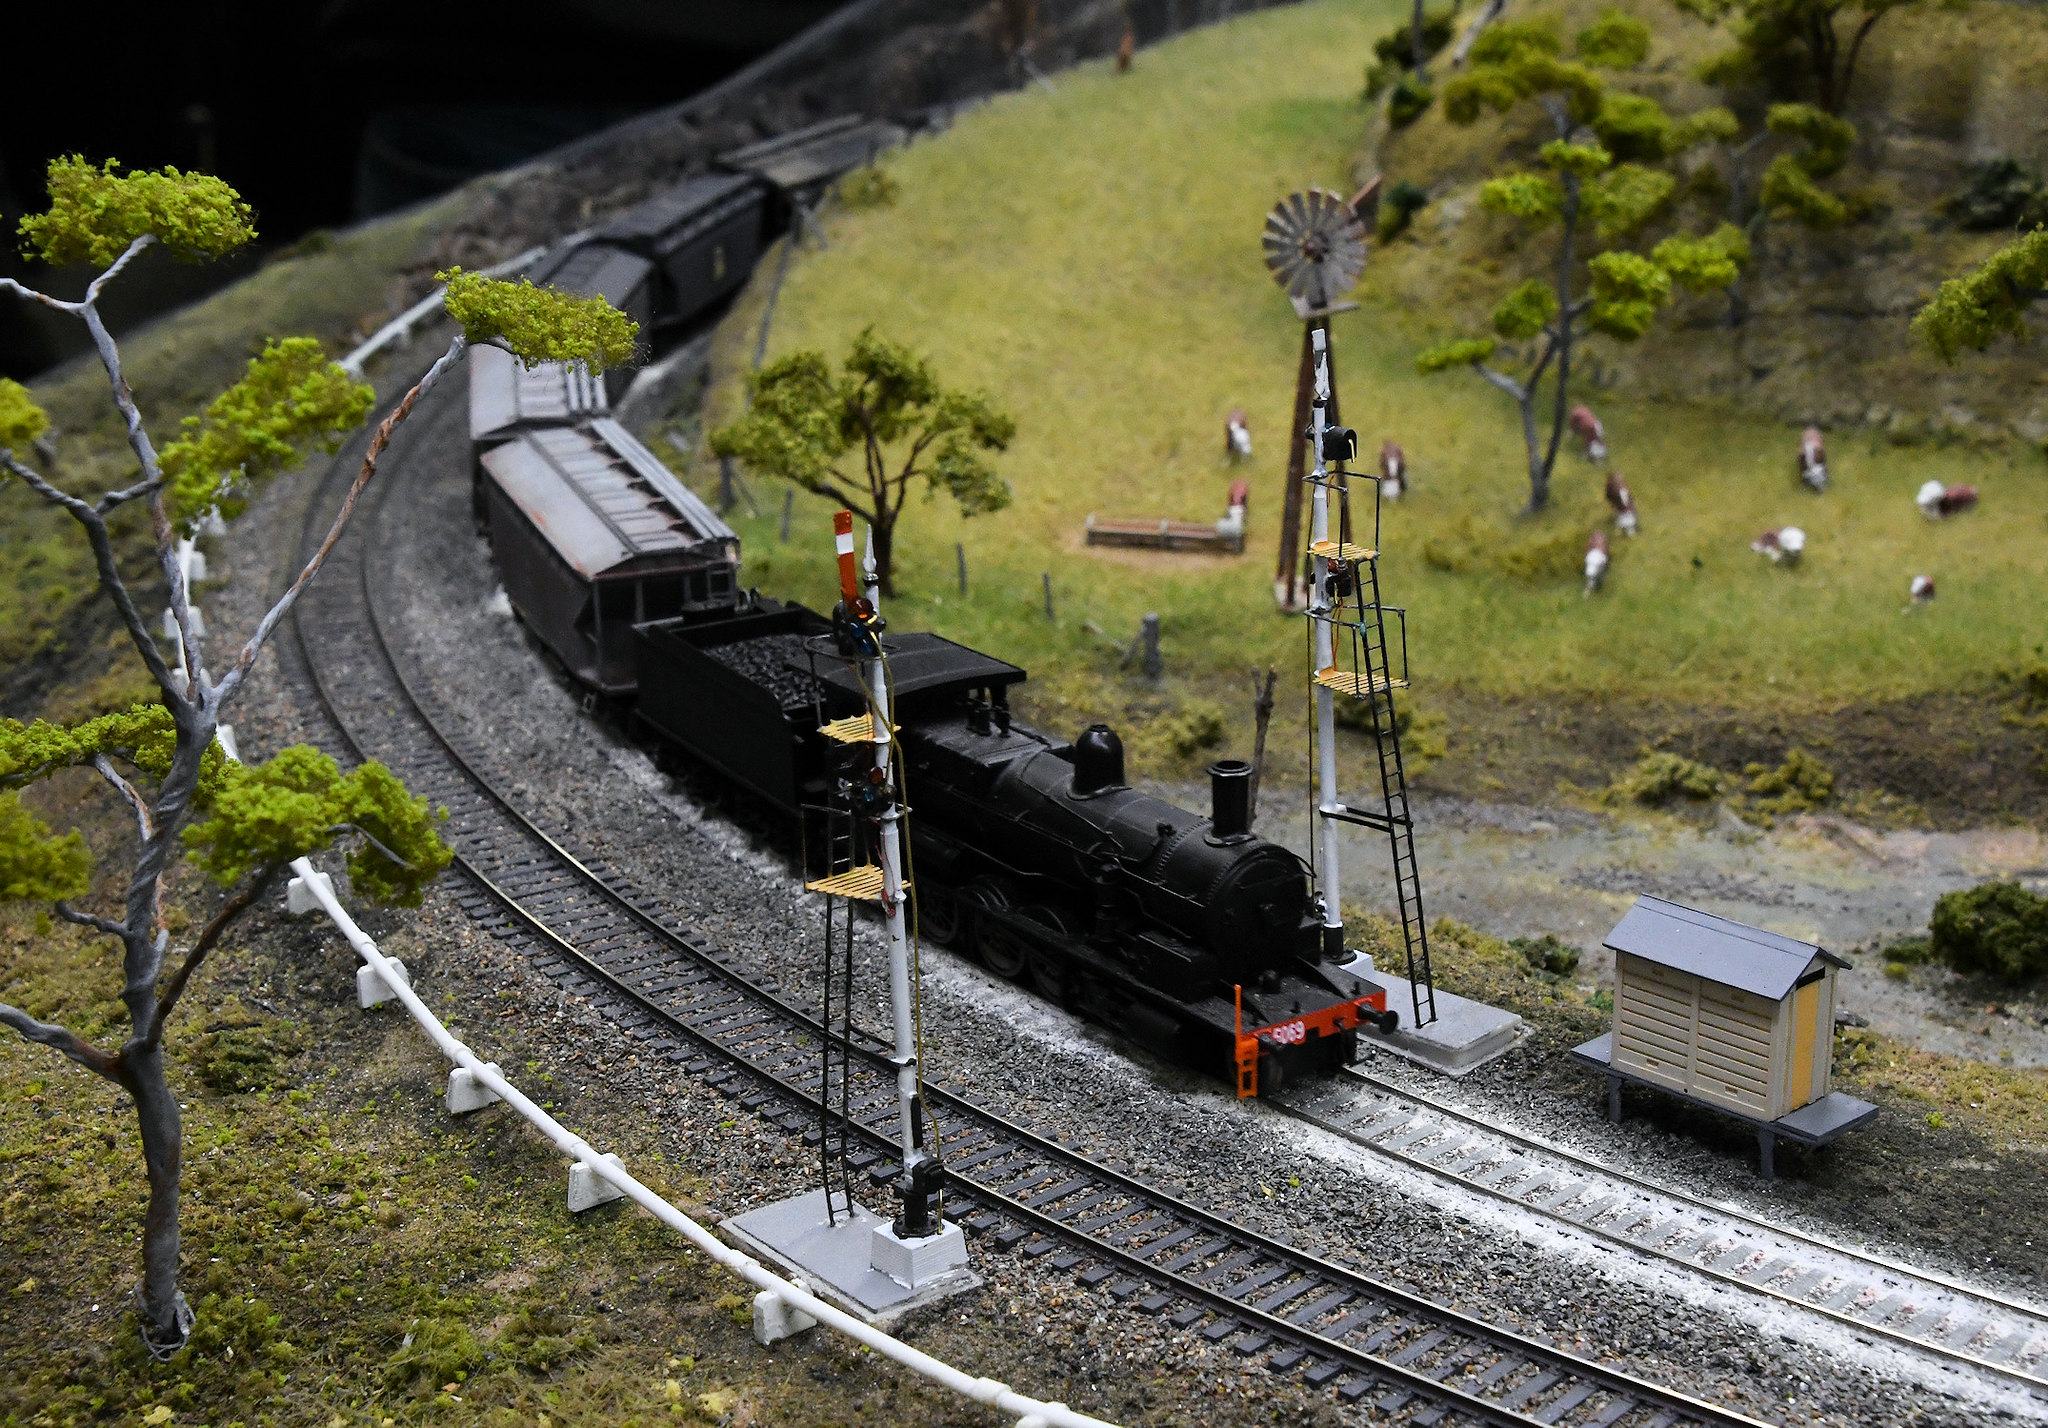 5069, Blue Mountains Layout, Epping Model Railway Exhibition, Rosehill, Sydney, NSW.